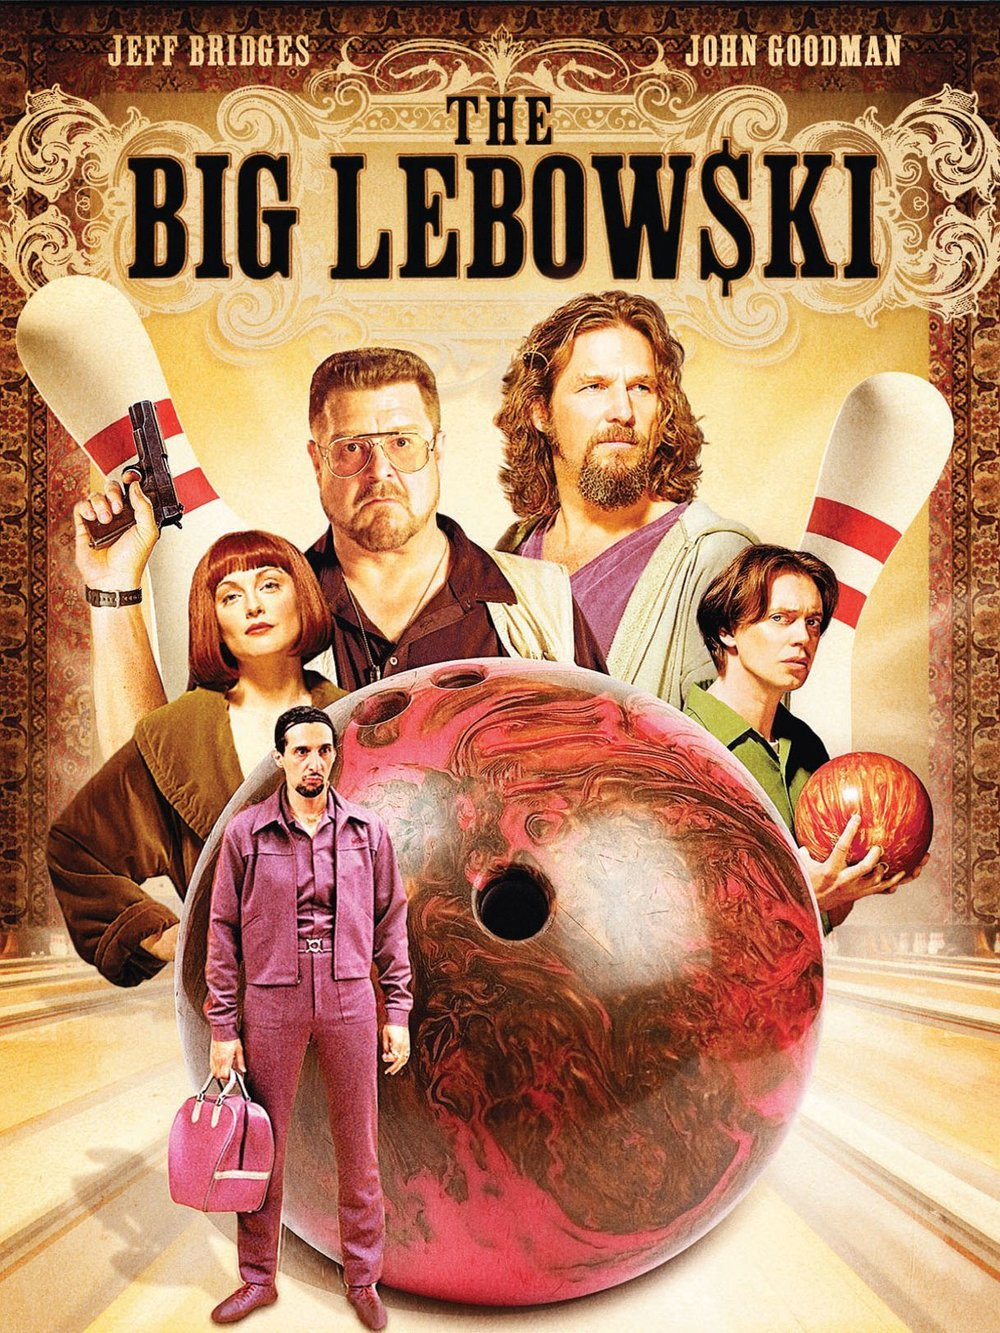 The Big Lebowski (1998) - Directed by: Joel Coen, Ethan CoenStarring: Jeff Bridges, John Goodman, Steve Buscemi, Julianne Moore, Philip Seymour Hoffman, Tara Reid, David Huddleston, Peter Stormare, Flea, John Turturro, David ThewlisRated: R for Pervasive Strong Language, Drug Content, Sexuality, and Brief ViolenceRunning Time: 1 h 57 mTMM Score: 5 stars out of 5STRENGTHS: This is a Perfect FilmWEAKNESSES: -